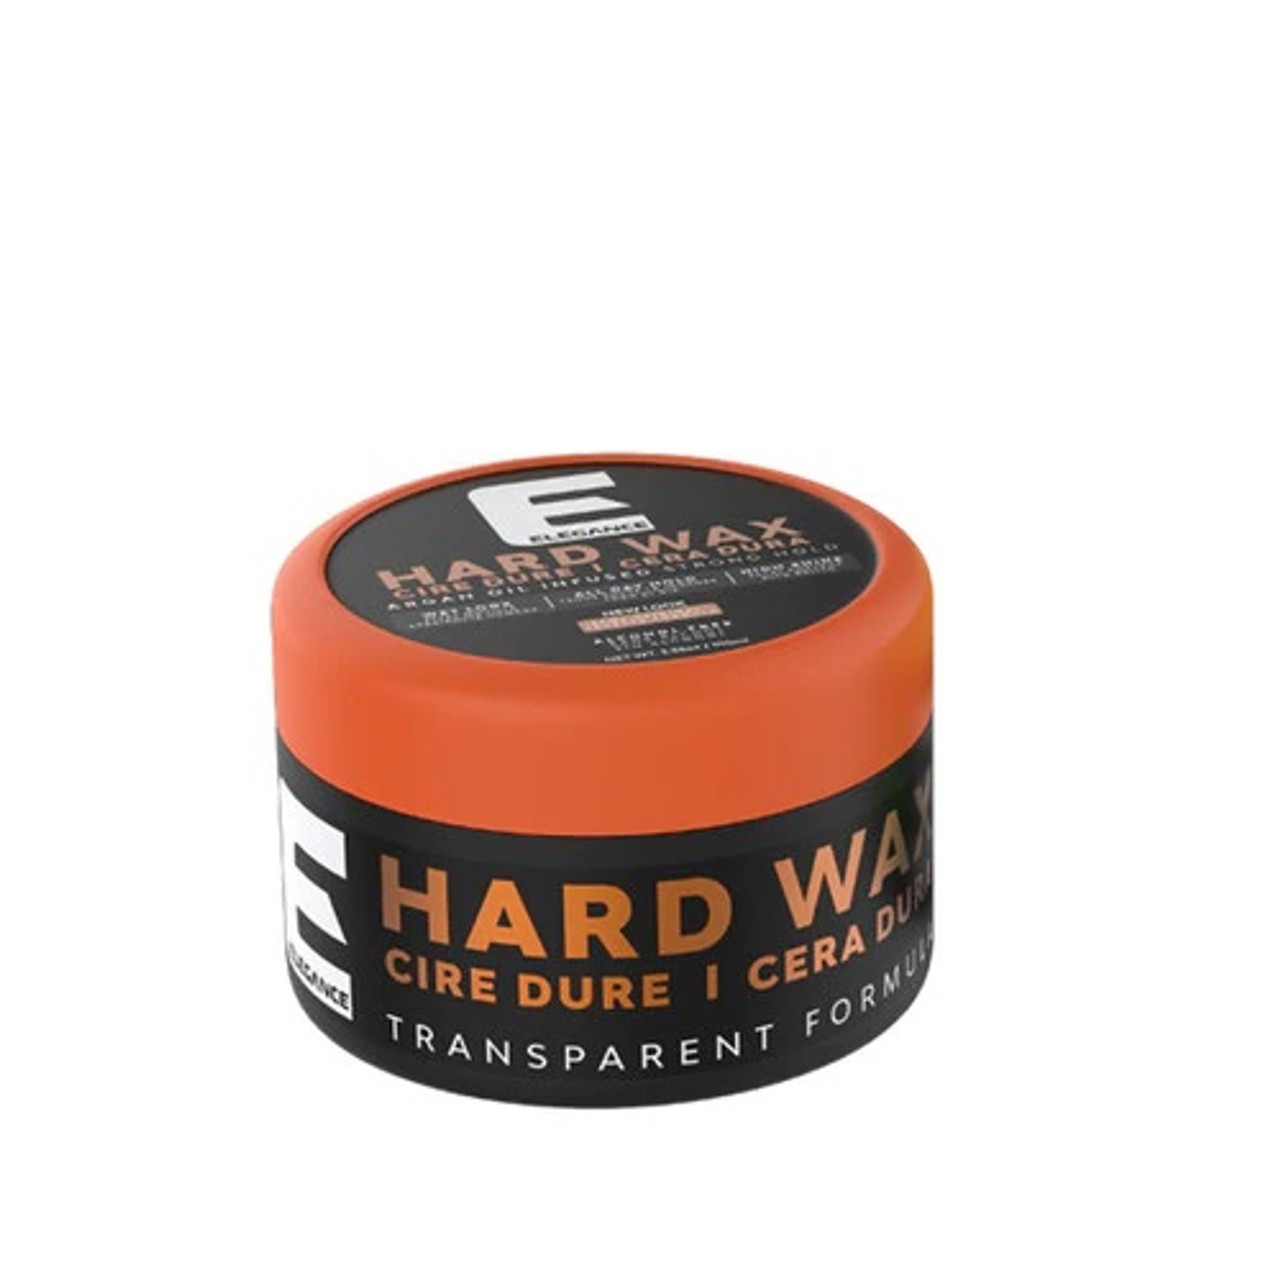 Elegance Gel Wax - Hard